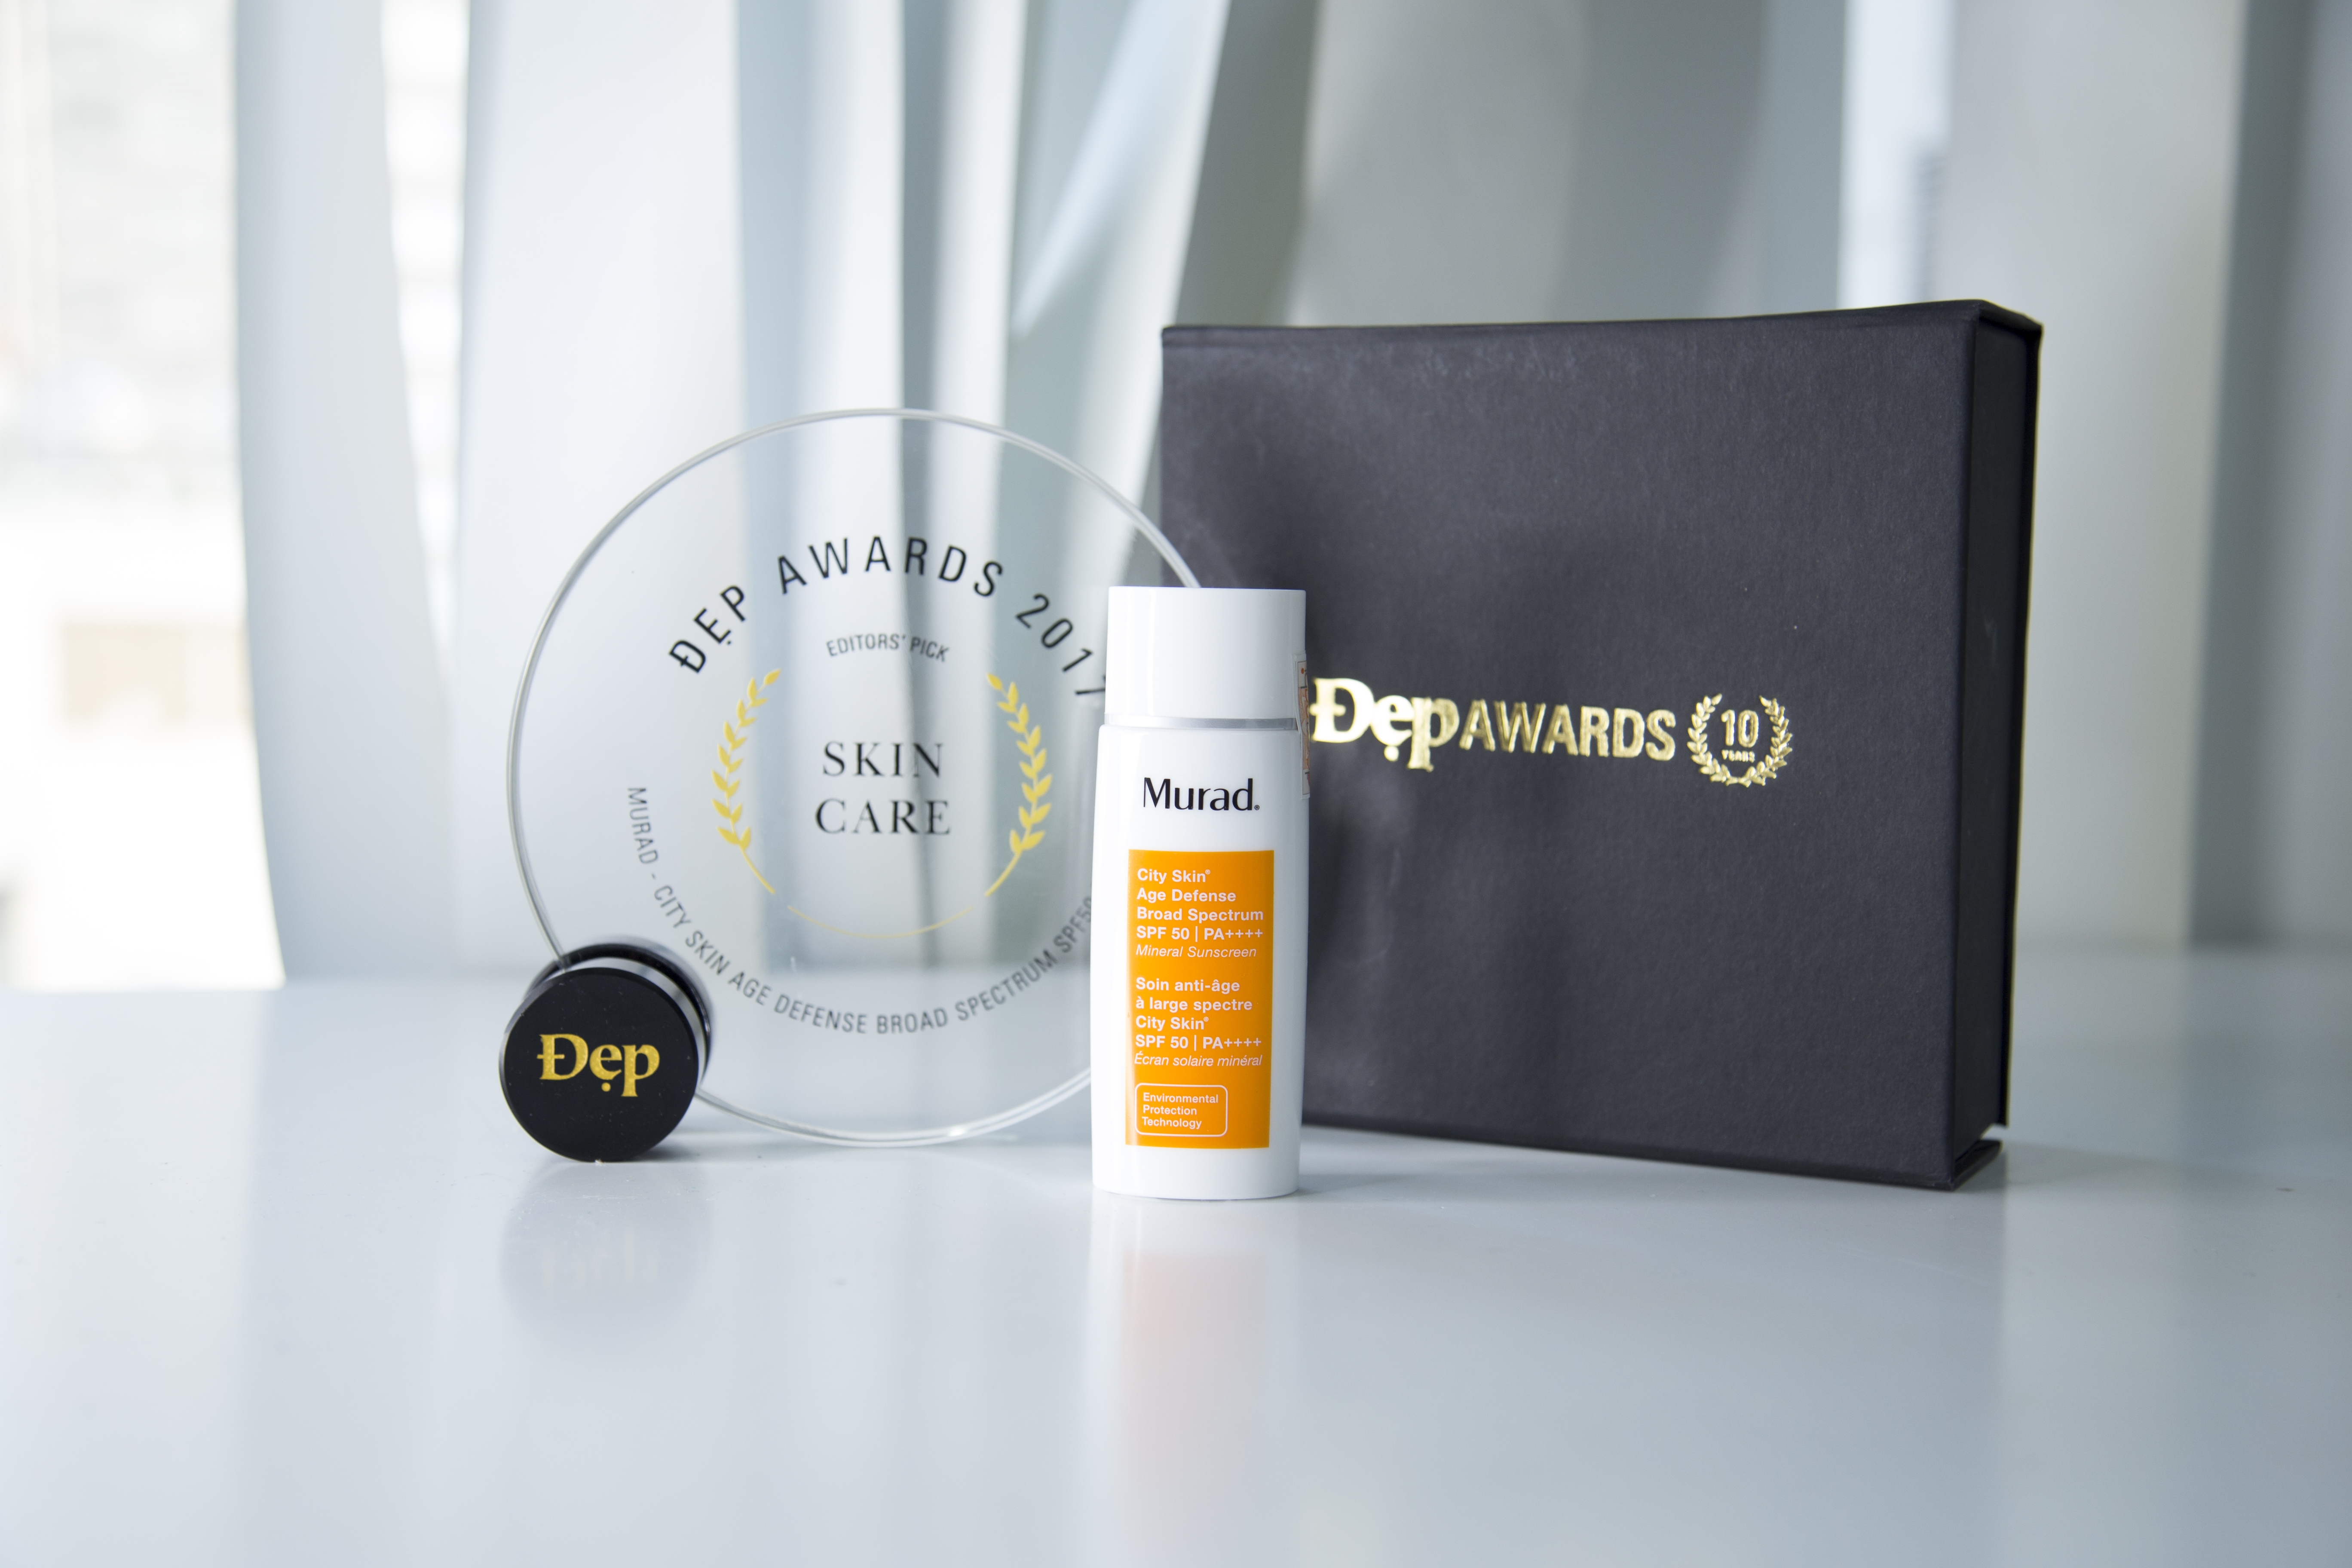 depawards2017-Murad